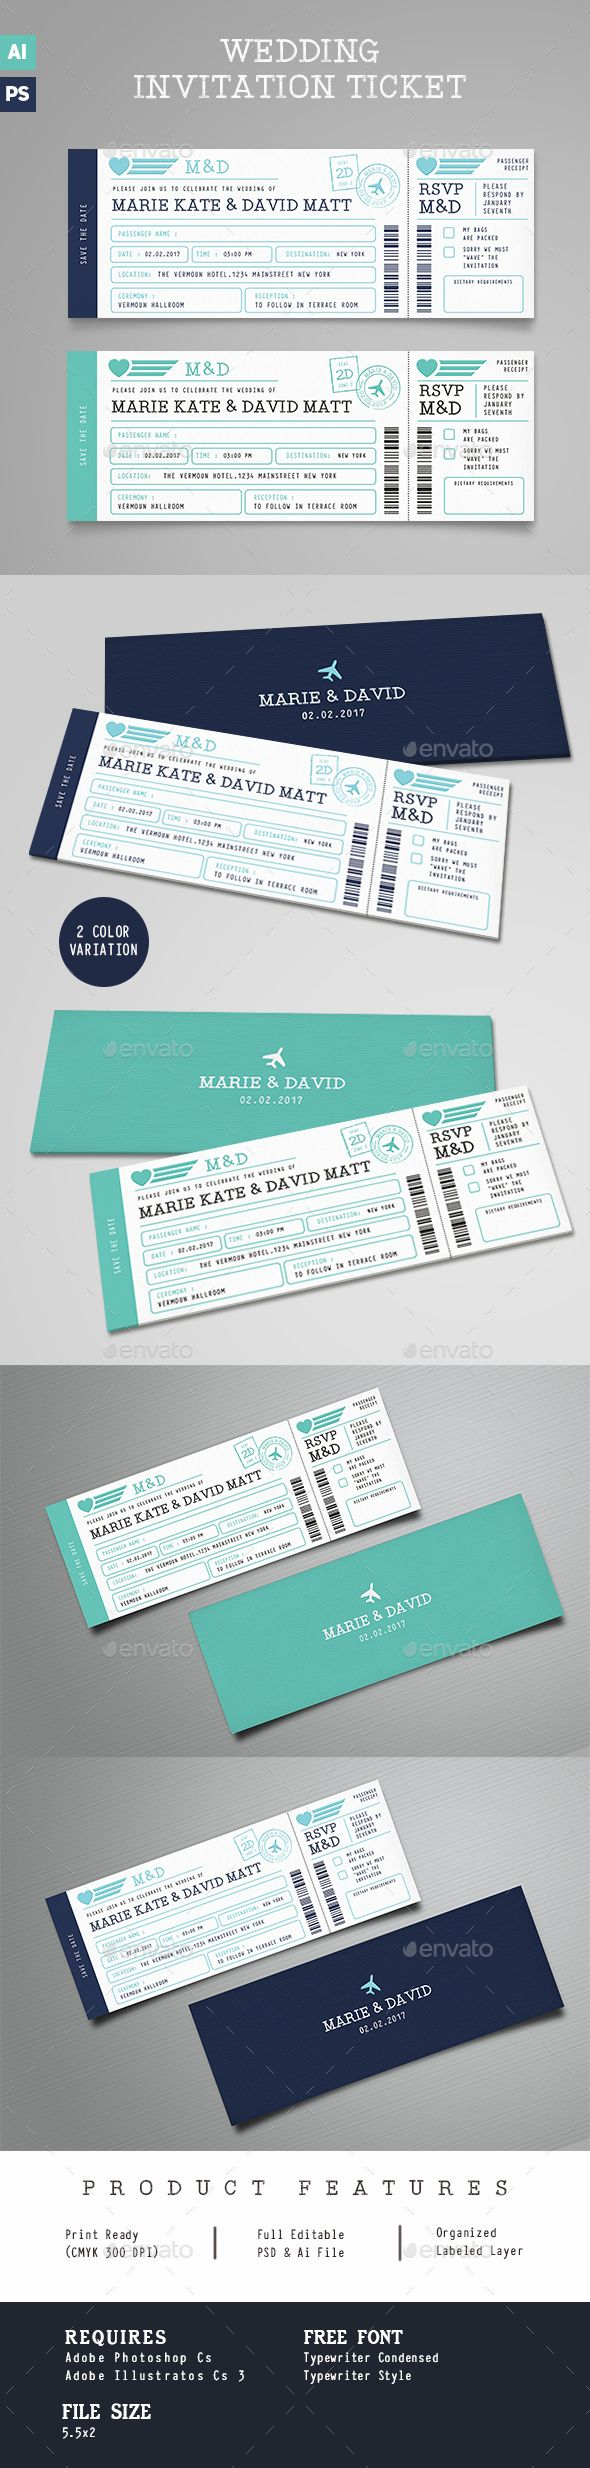 Boarding Pass Wedding Invitation Ticket